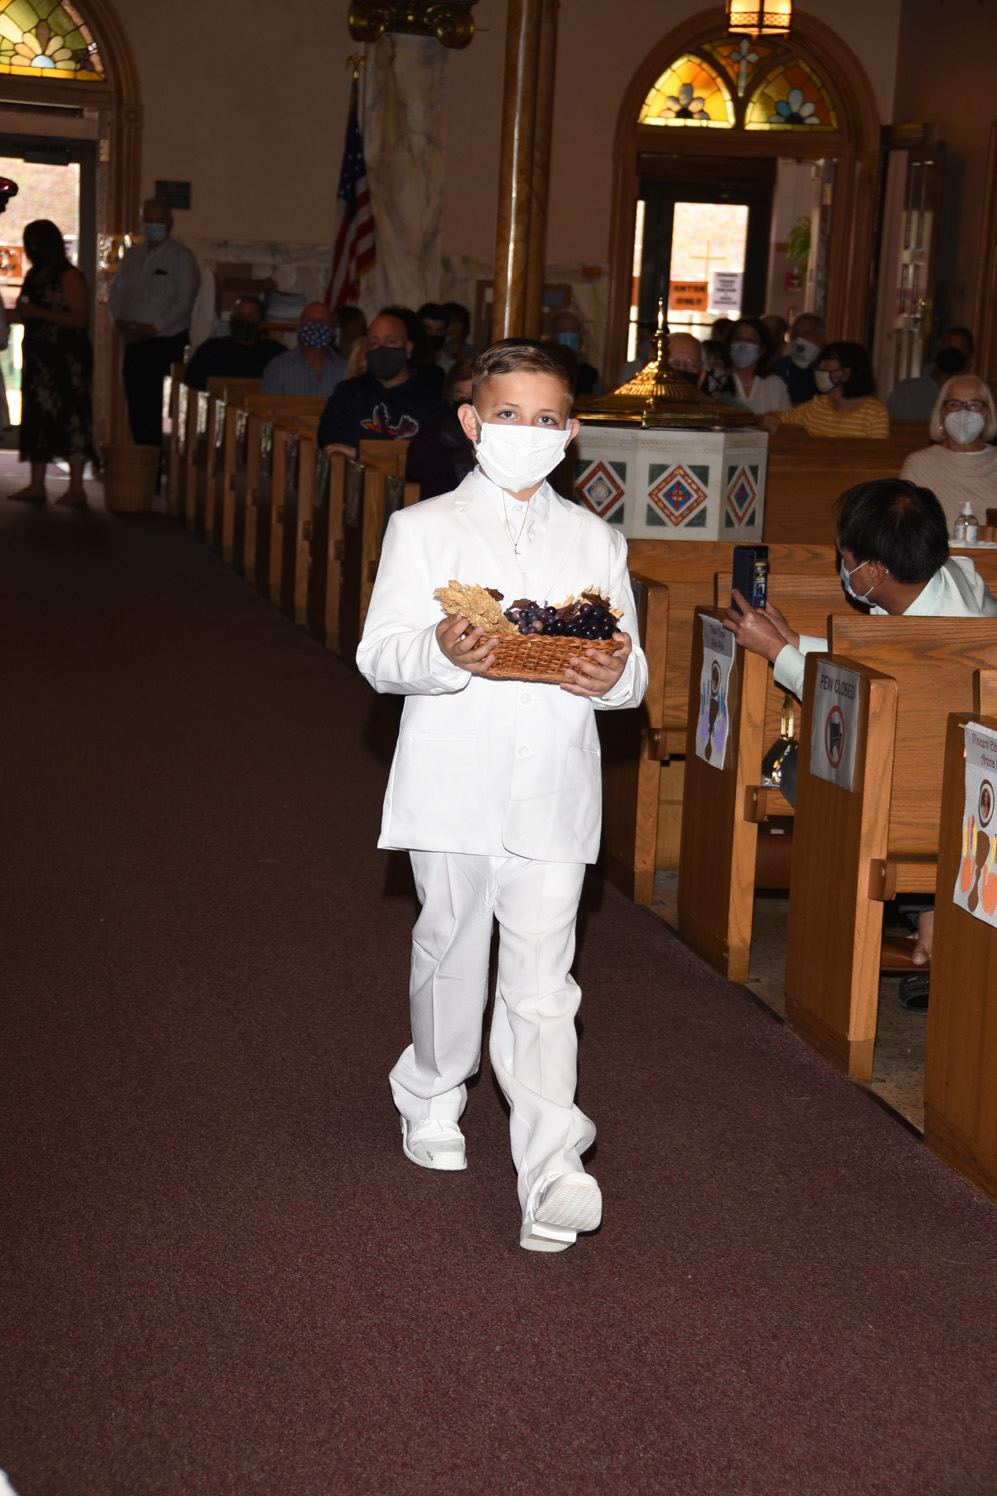 FIRST-COMMUNION-MAY-2-2021-1001001070